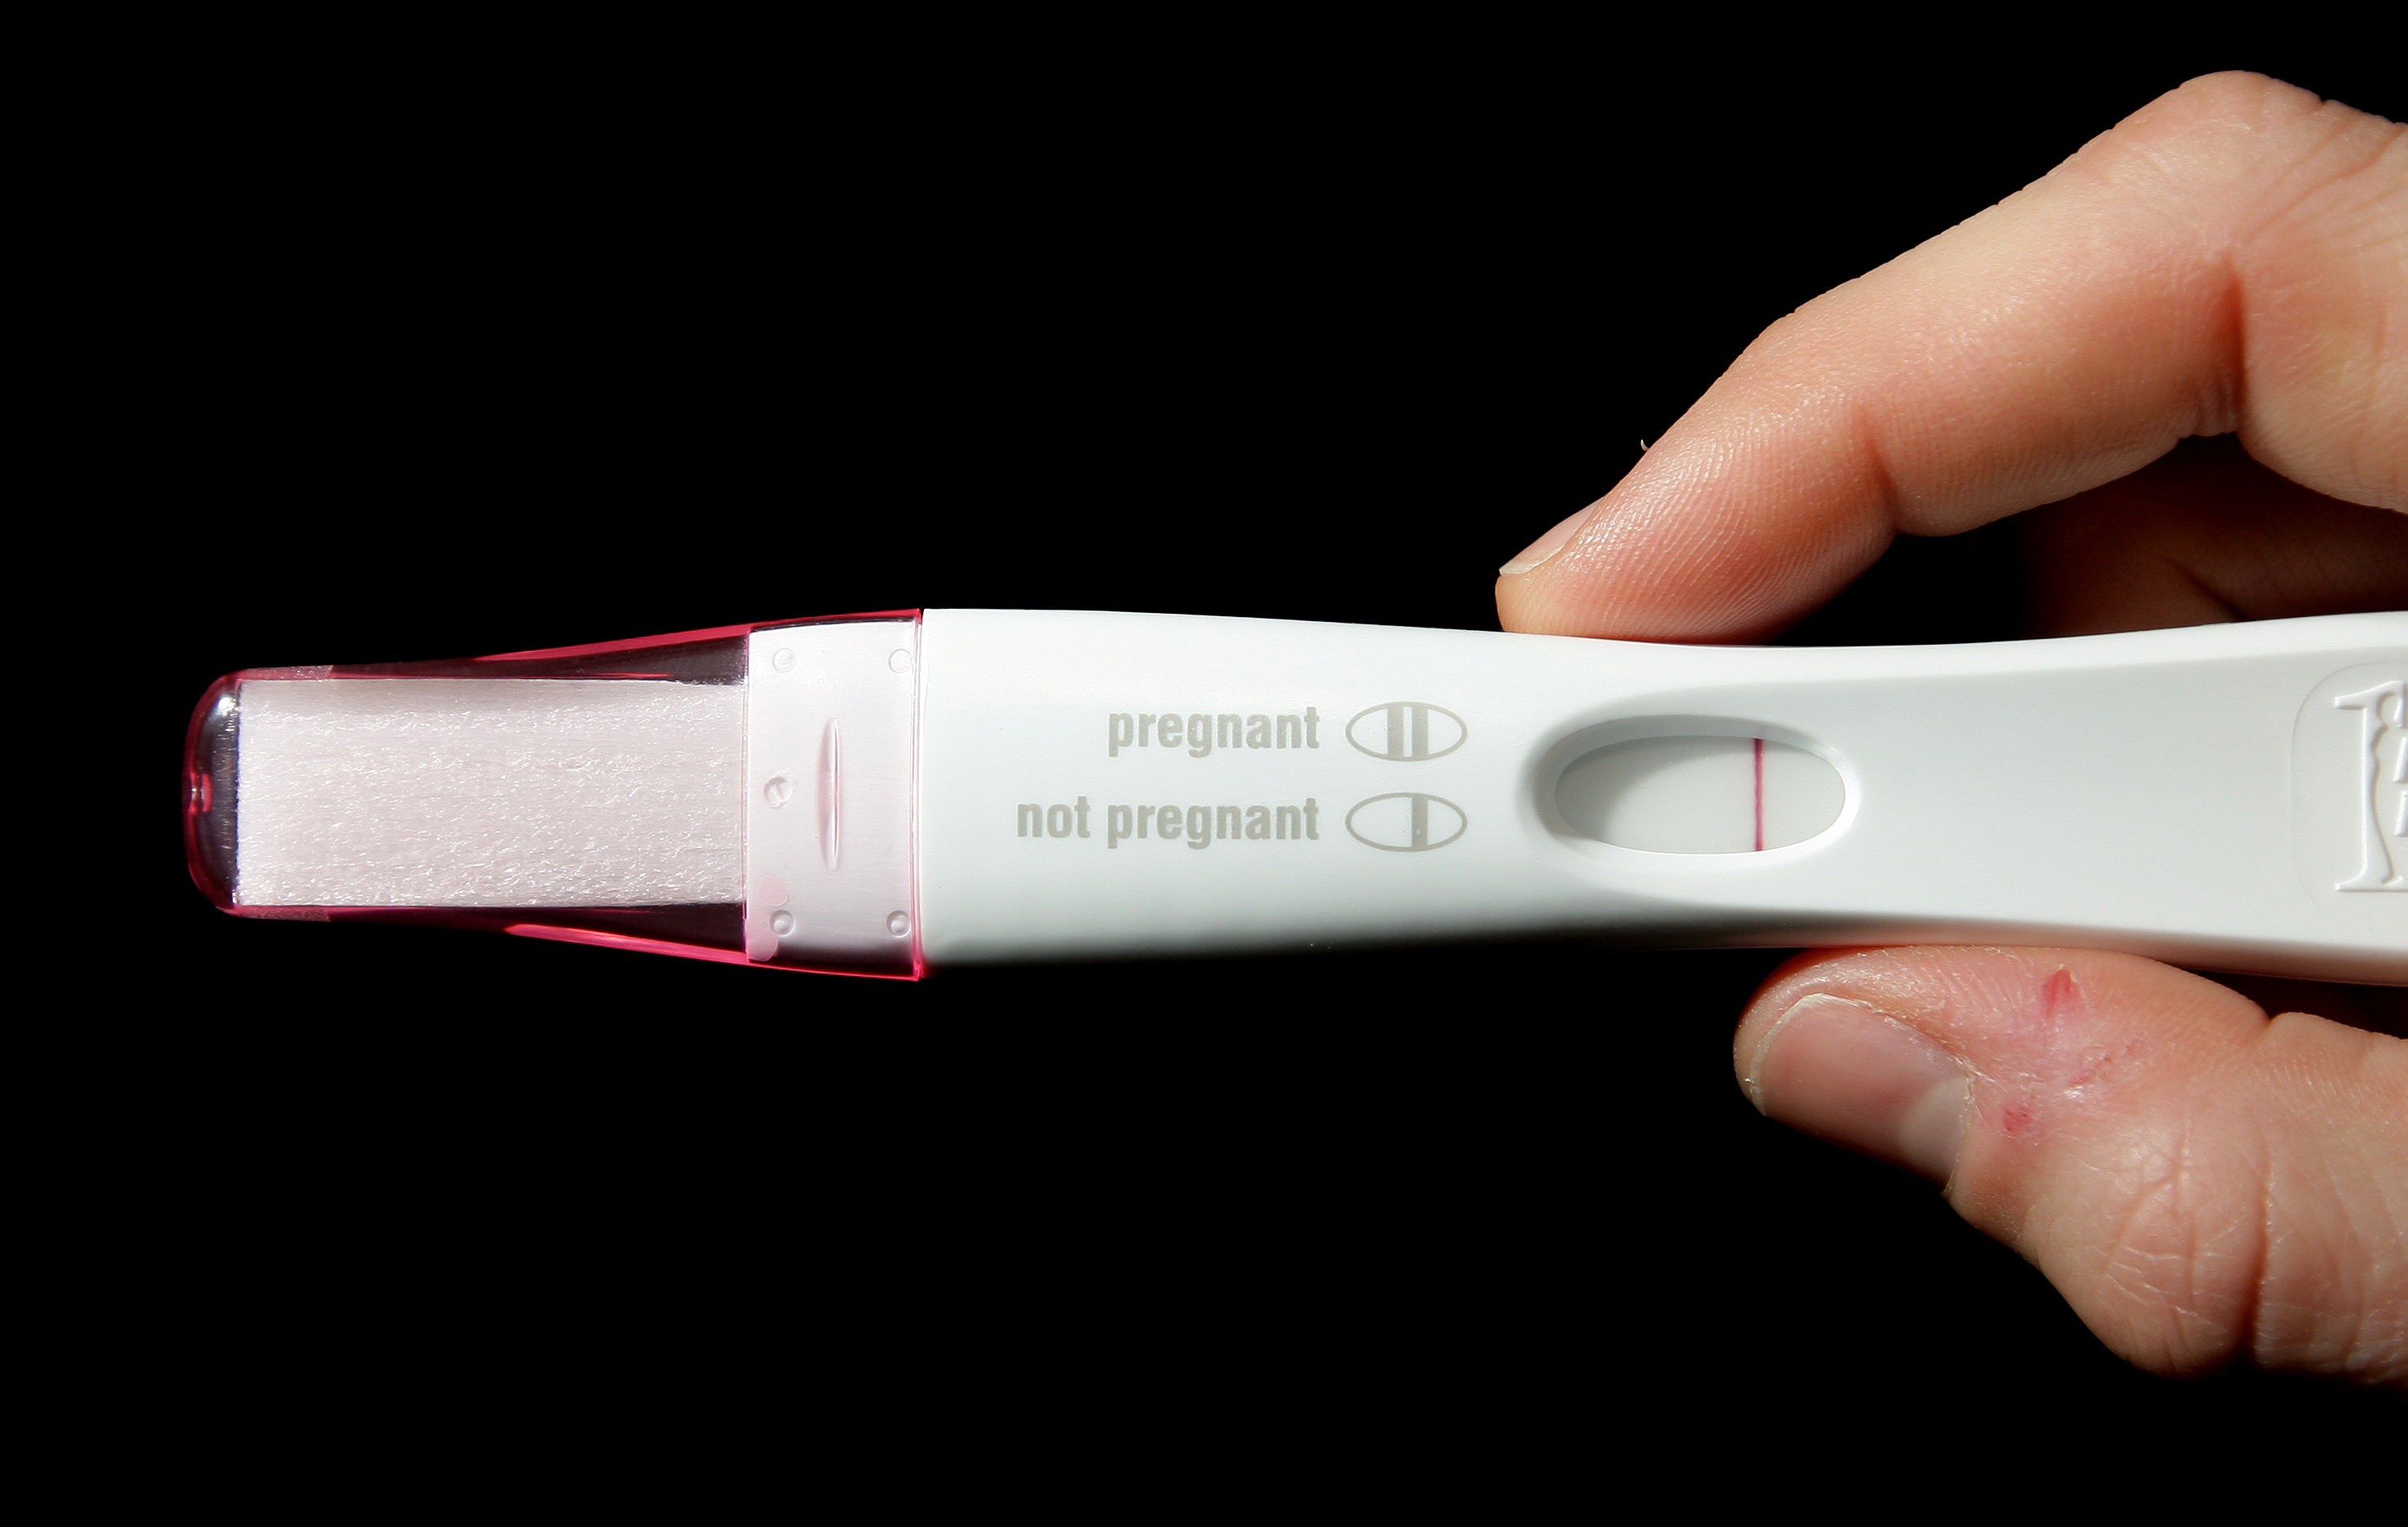 negative pregnancy test (Dominic Lipinski/PA)